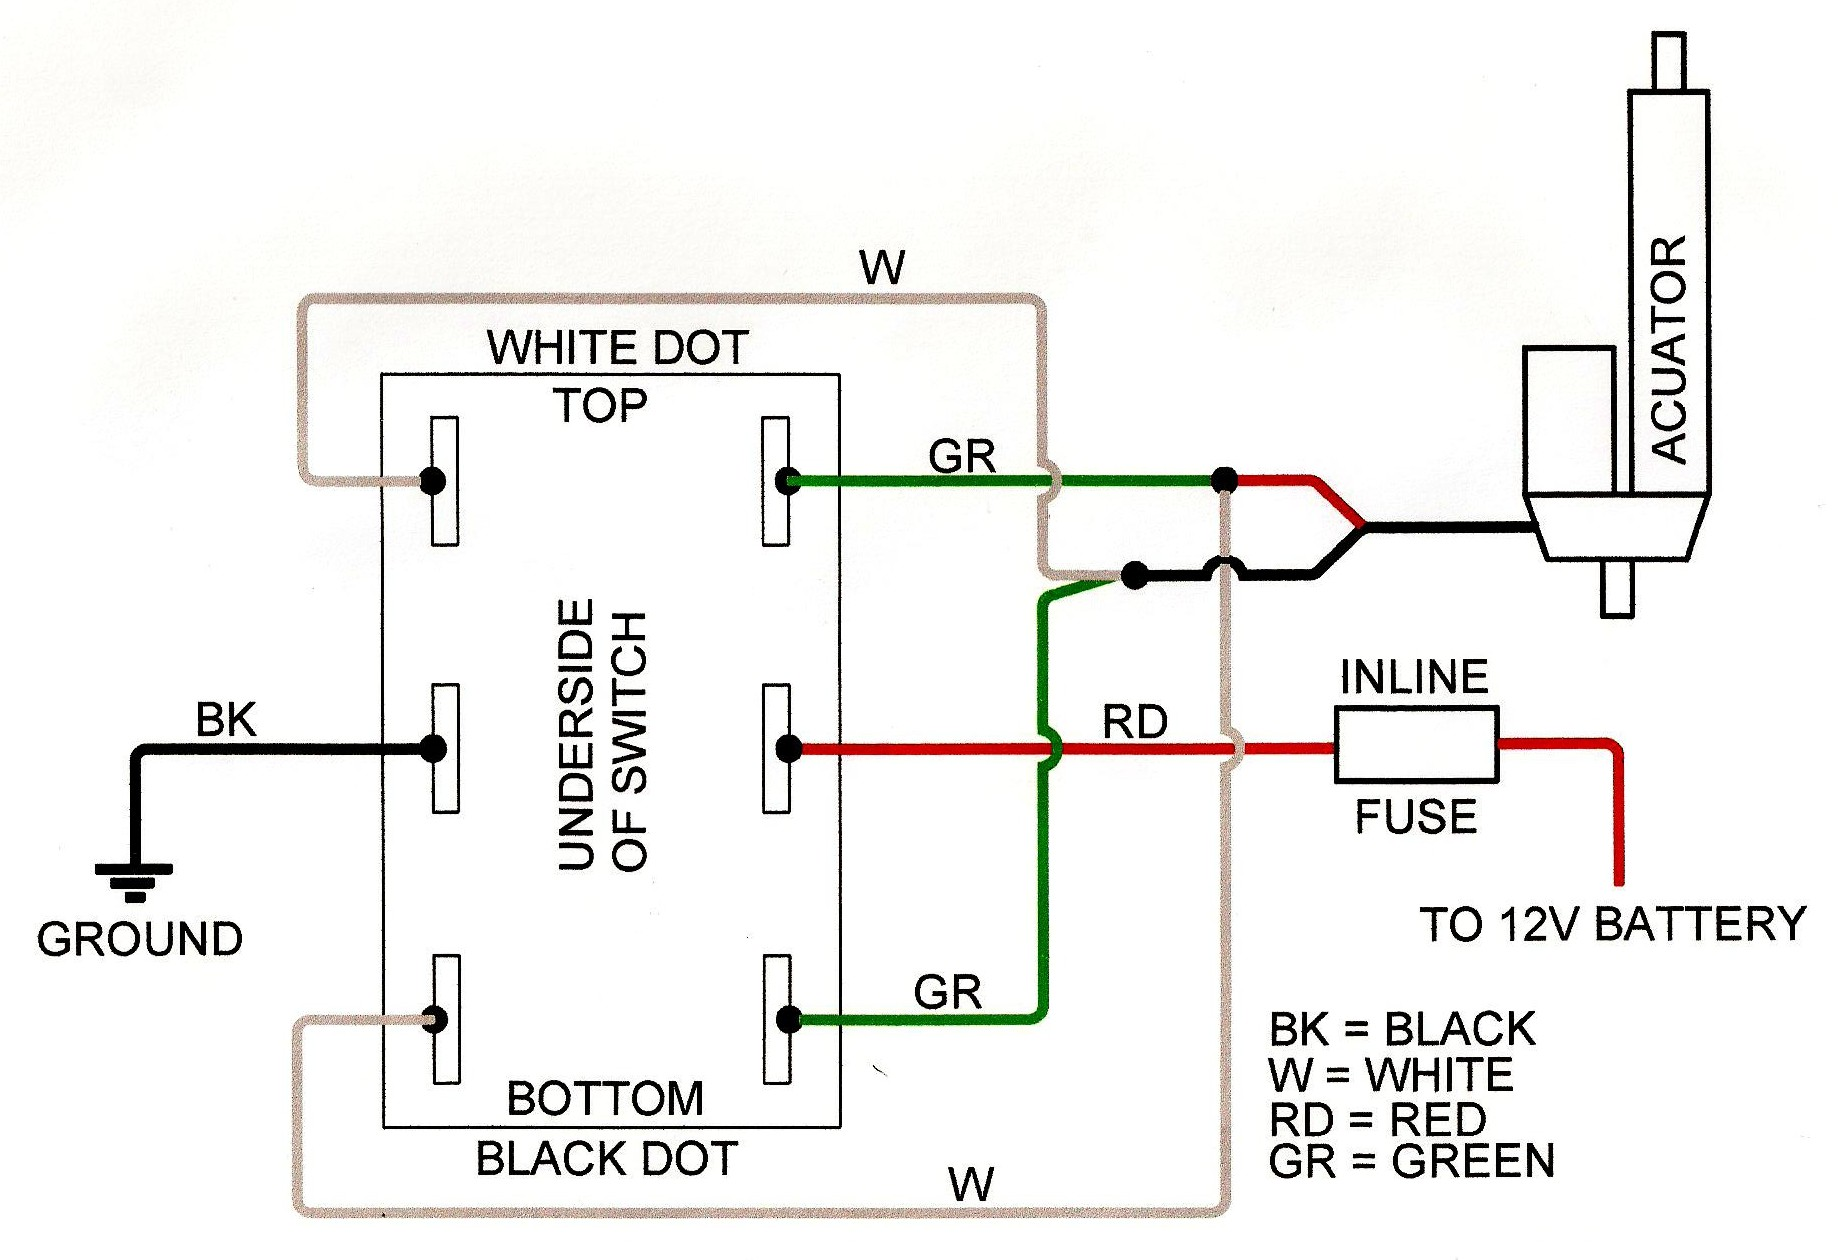 Wiring Diagram For 1967 Ford F100on 1965 Ford Falcon Wiring Diagram